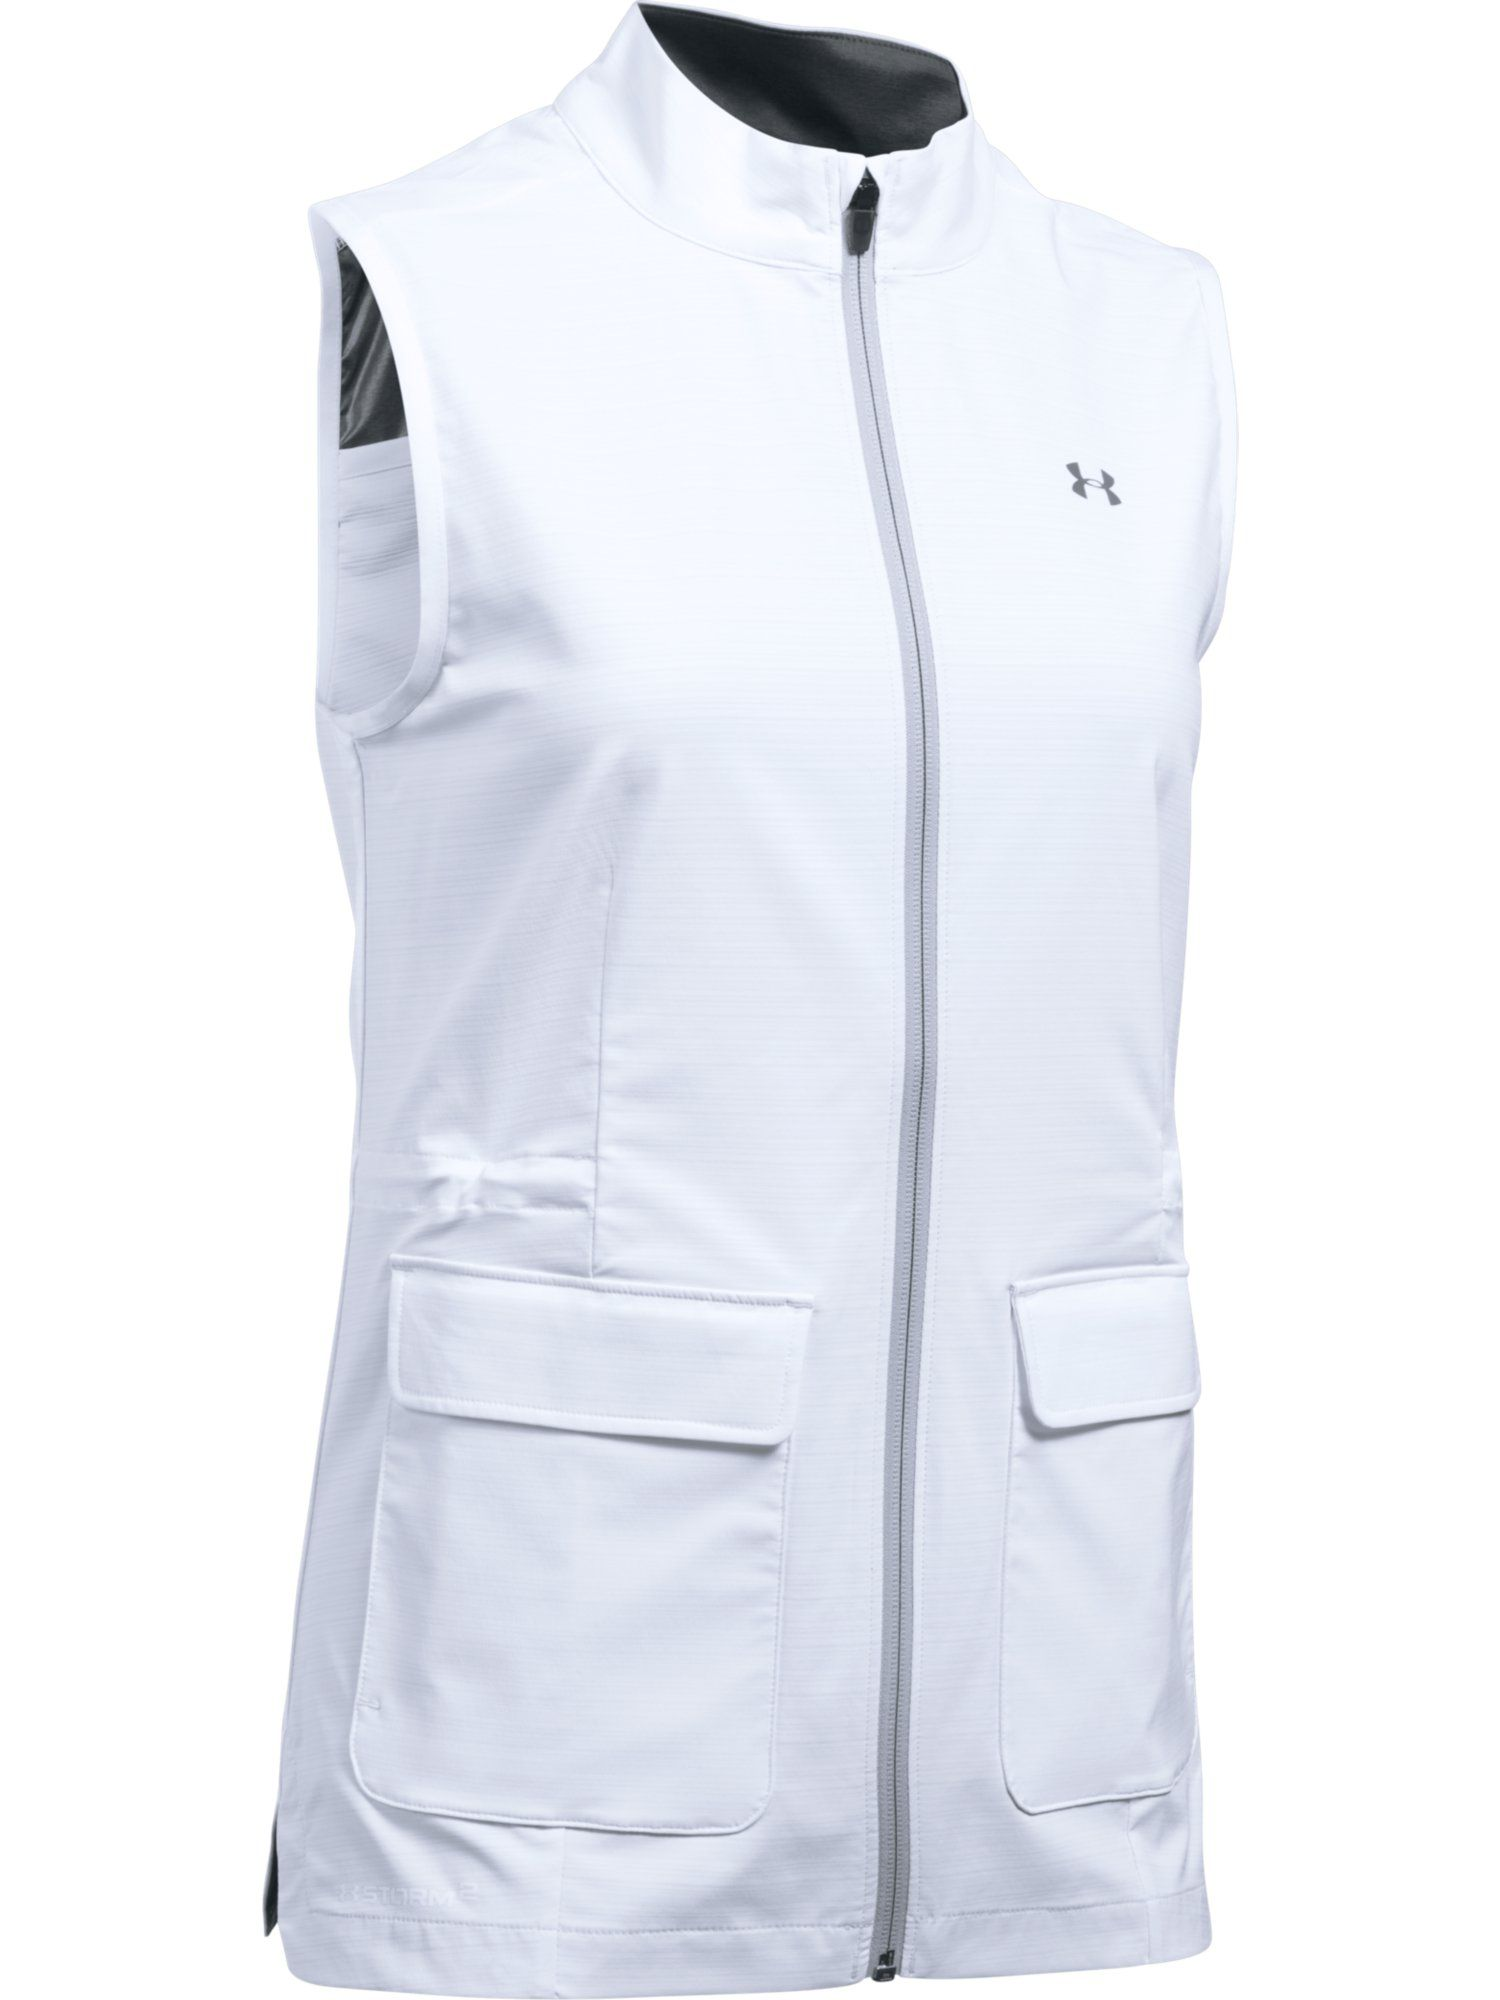 Under Armour Storm Windstrike Full Zip Vest, White